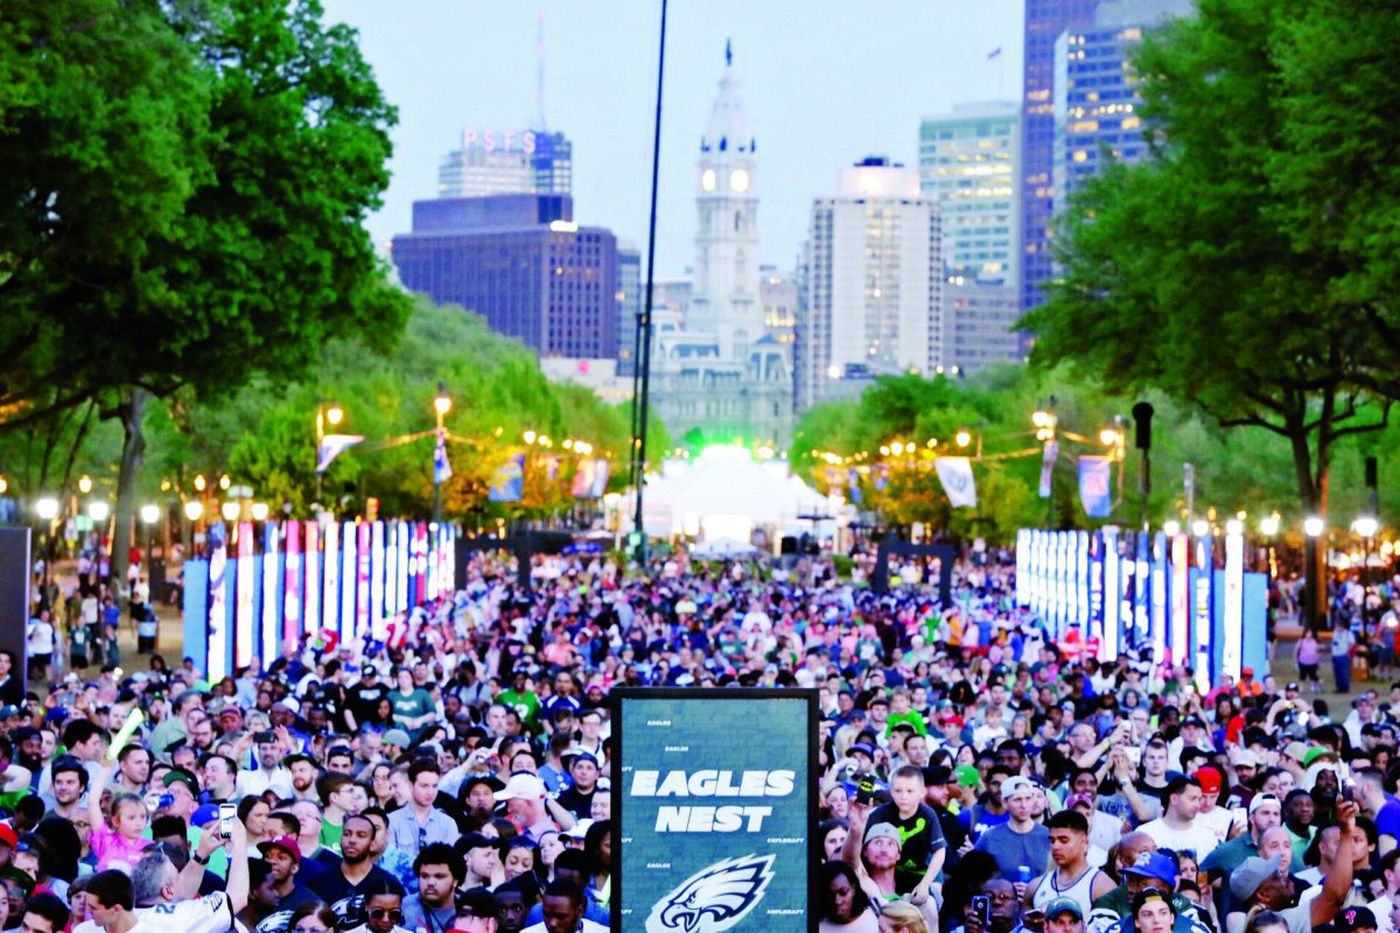 Dallas to host 2018 NFL draft after one year in Philadelphia